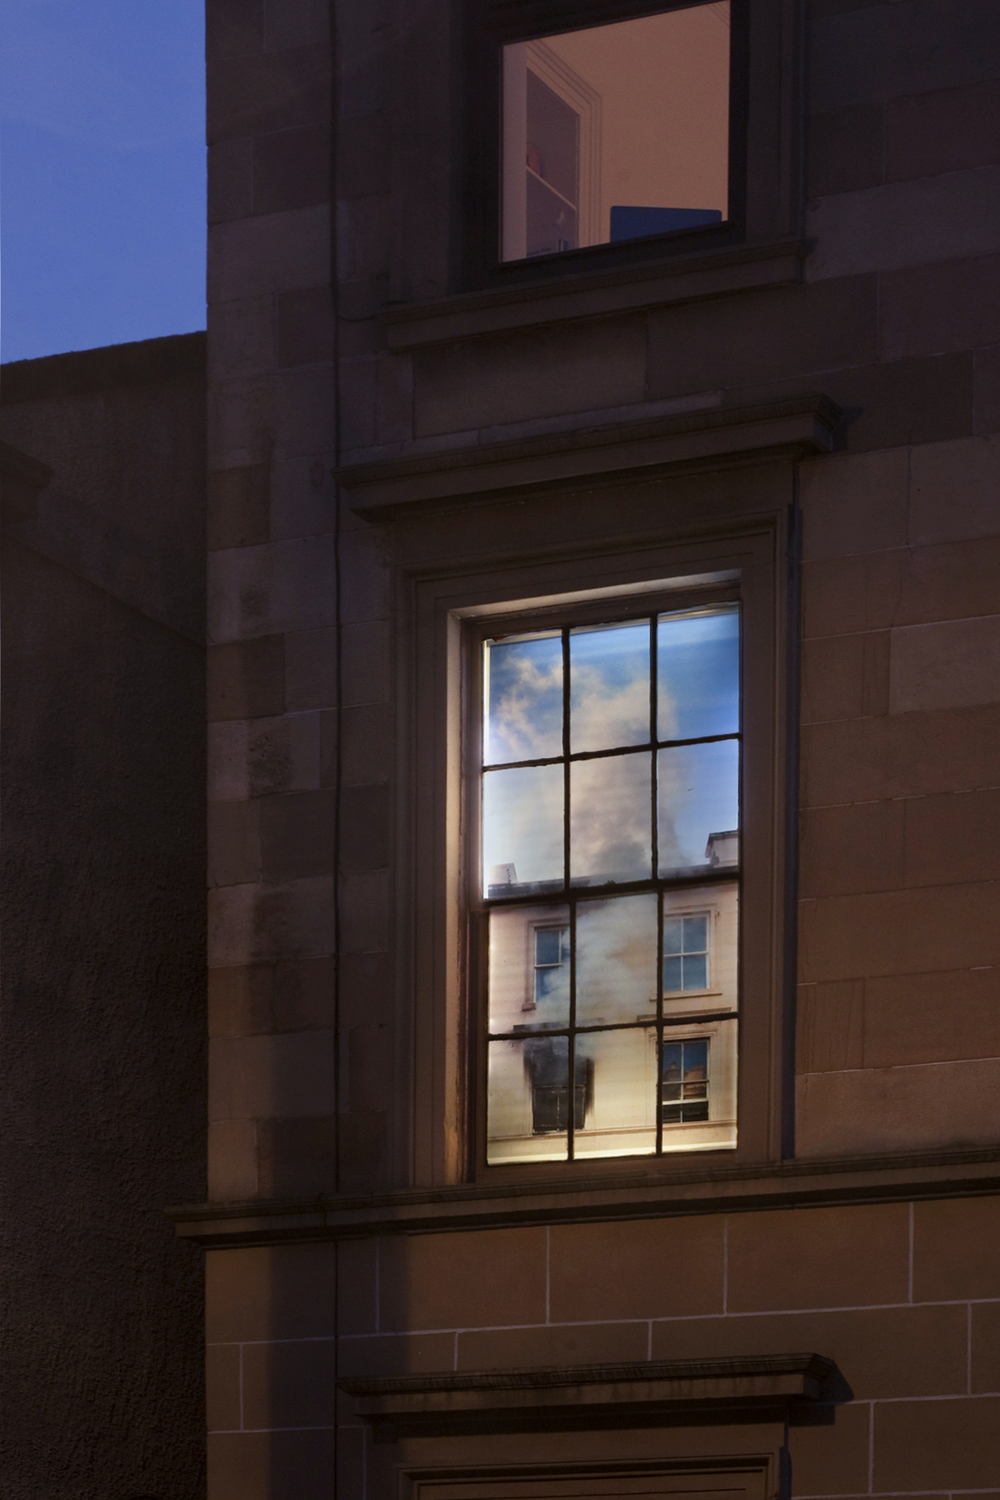 Tinderbox,  224x113cm, pigment on backlit film in window lightbox, 2012  Glasgow, also called the 'Tinderbox City'. This work was installed facing the street and only visible to the public outside the gallery space.